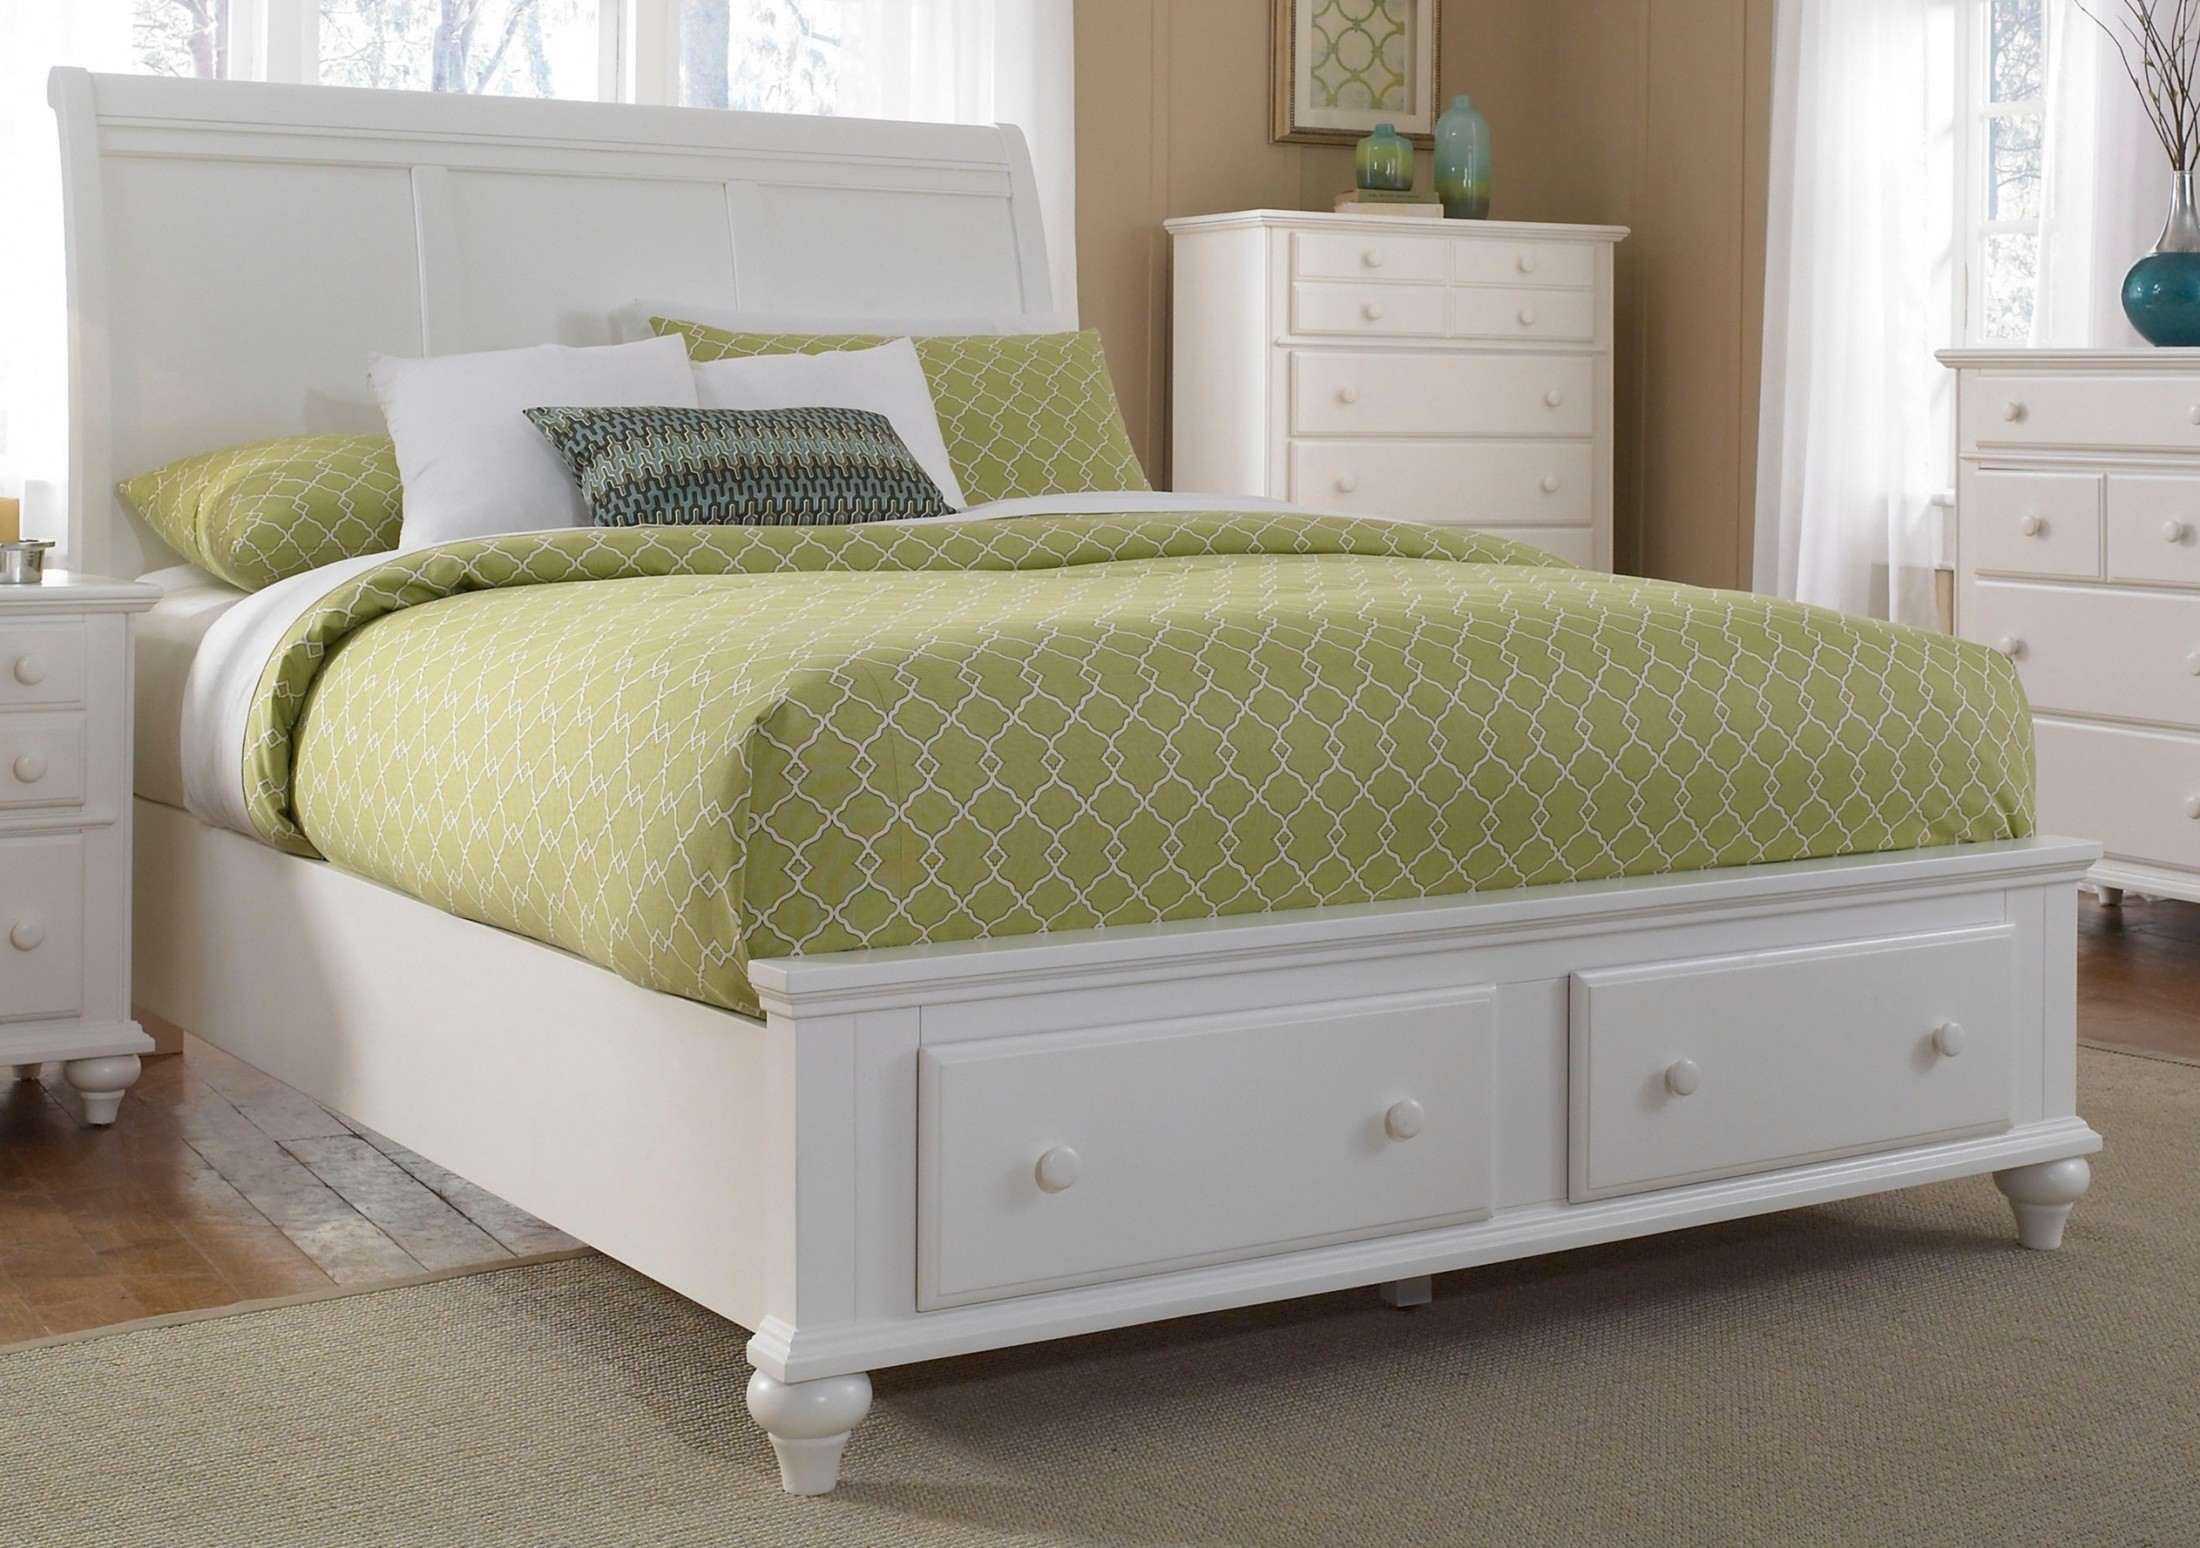 Hayden Place White Queen Storage Sleigh Bed From Broyhill